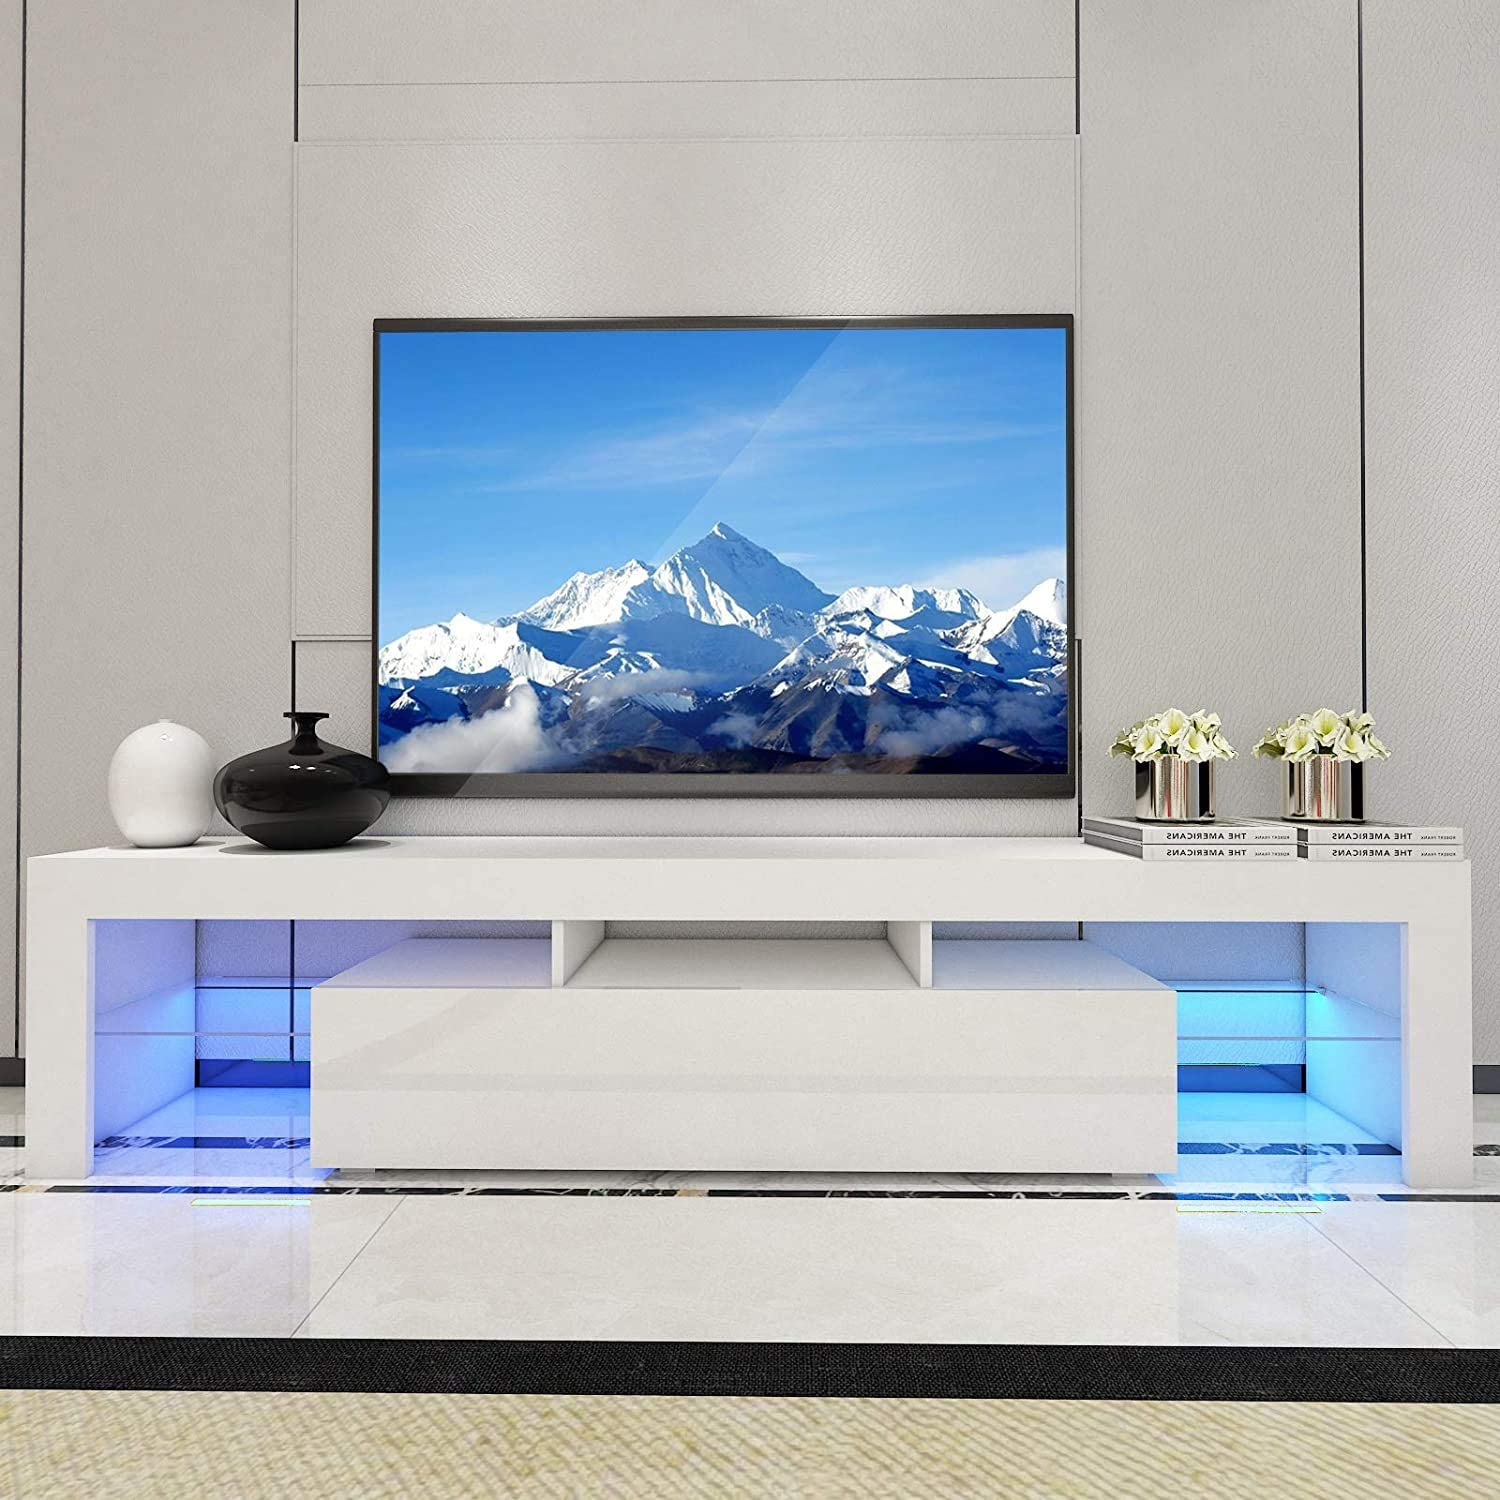 MTFY TV Stand with LED Modern Rapid rise Lights Cabinet 52'' Storag 2021 model